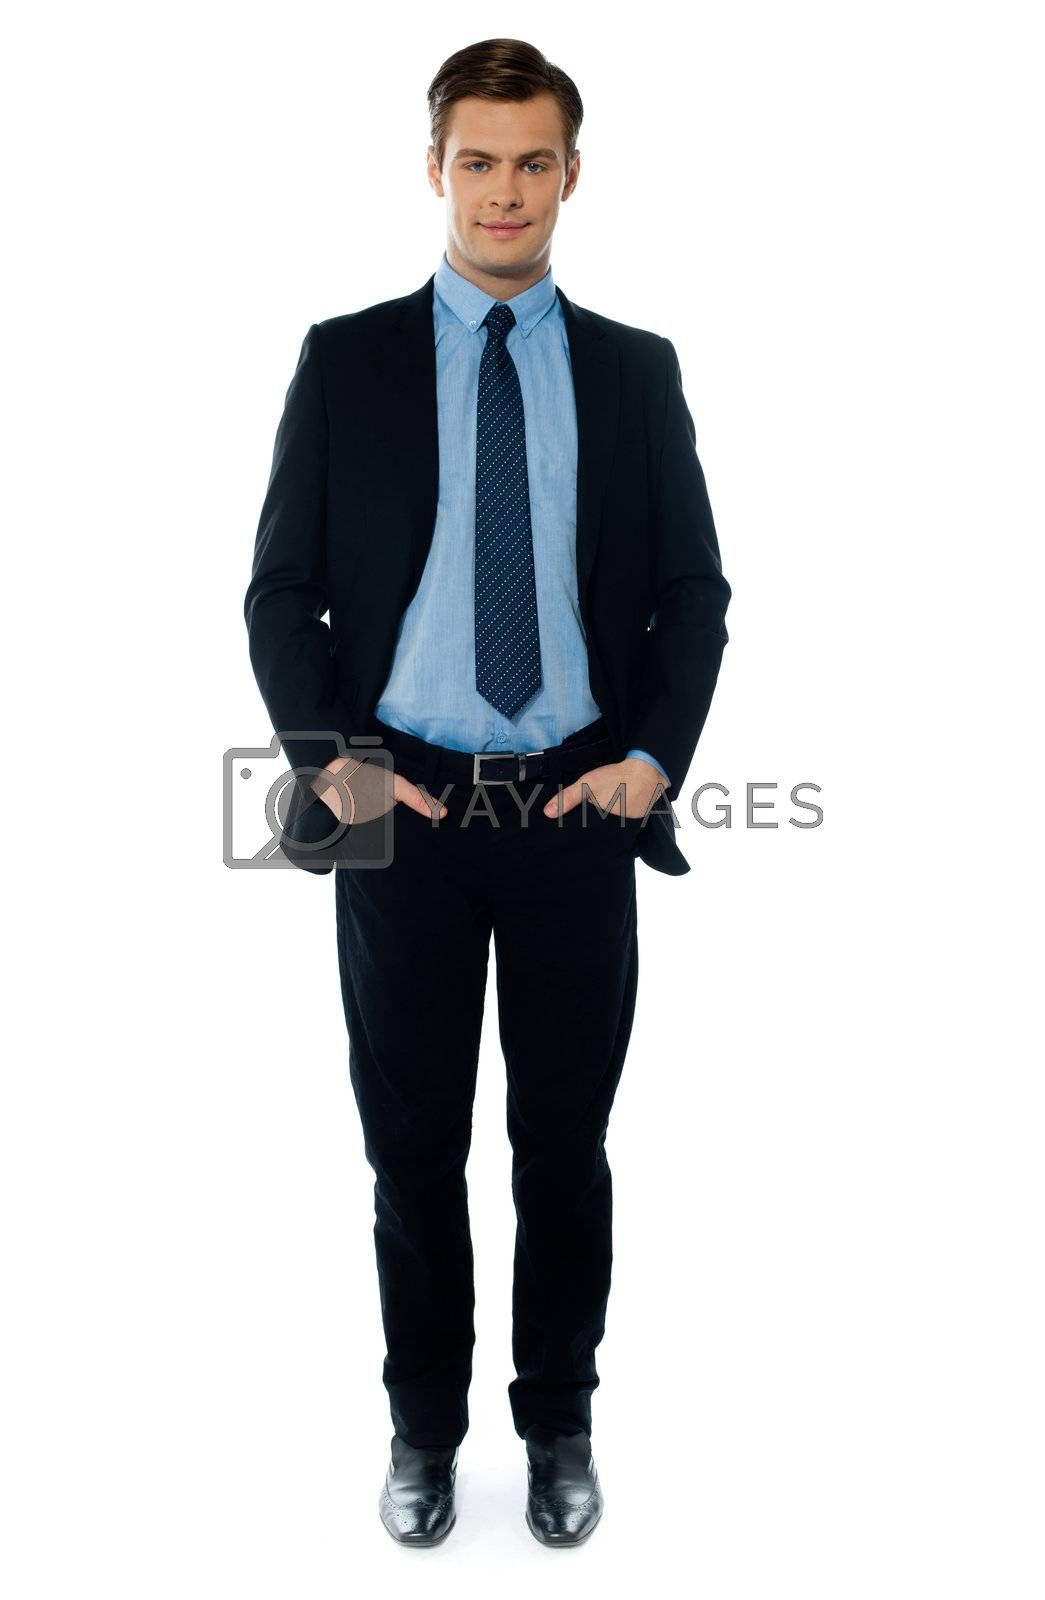 Businessman posing with hands in pocket on white background